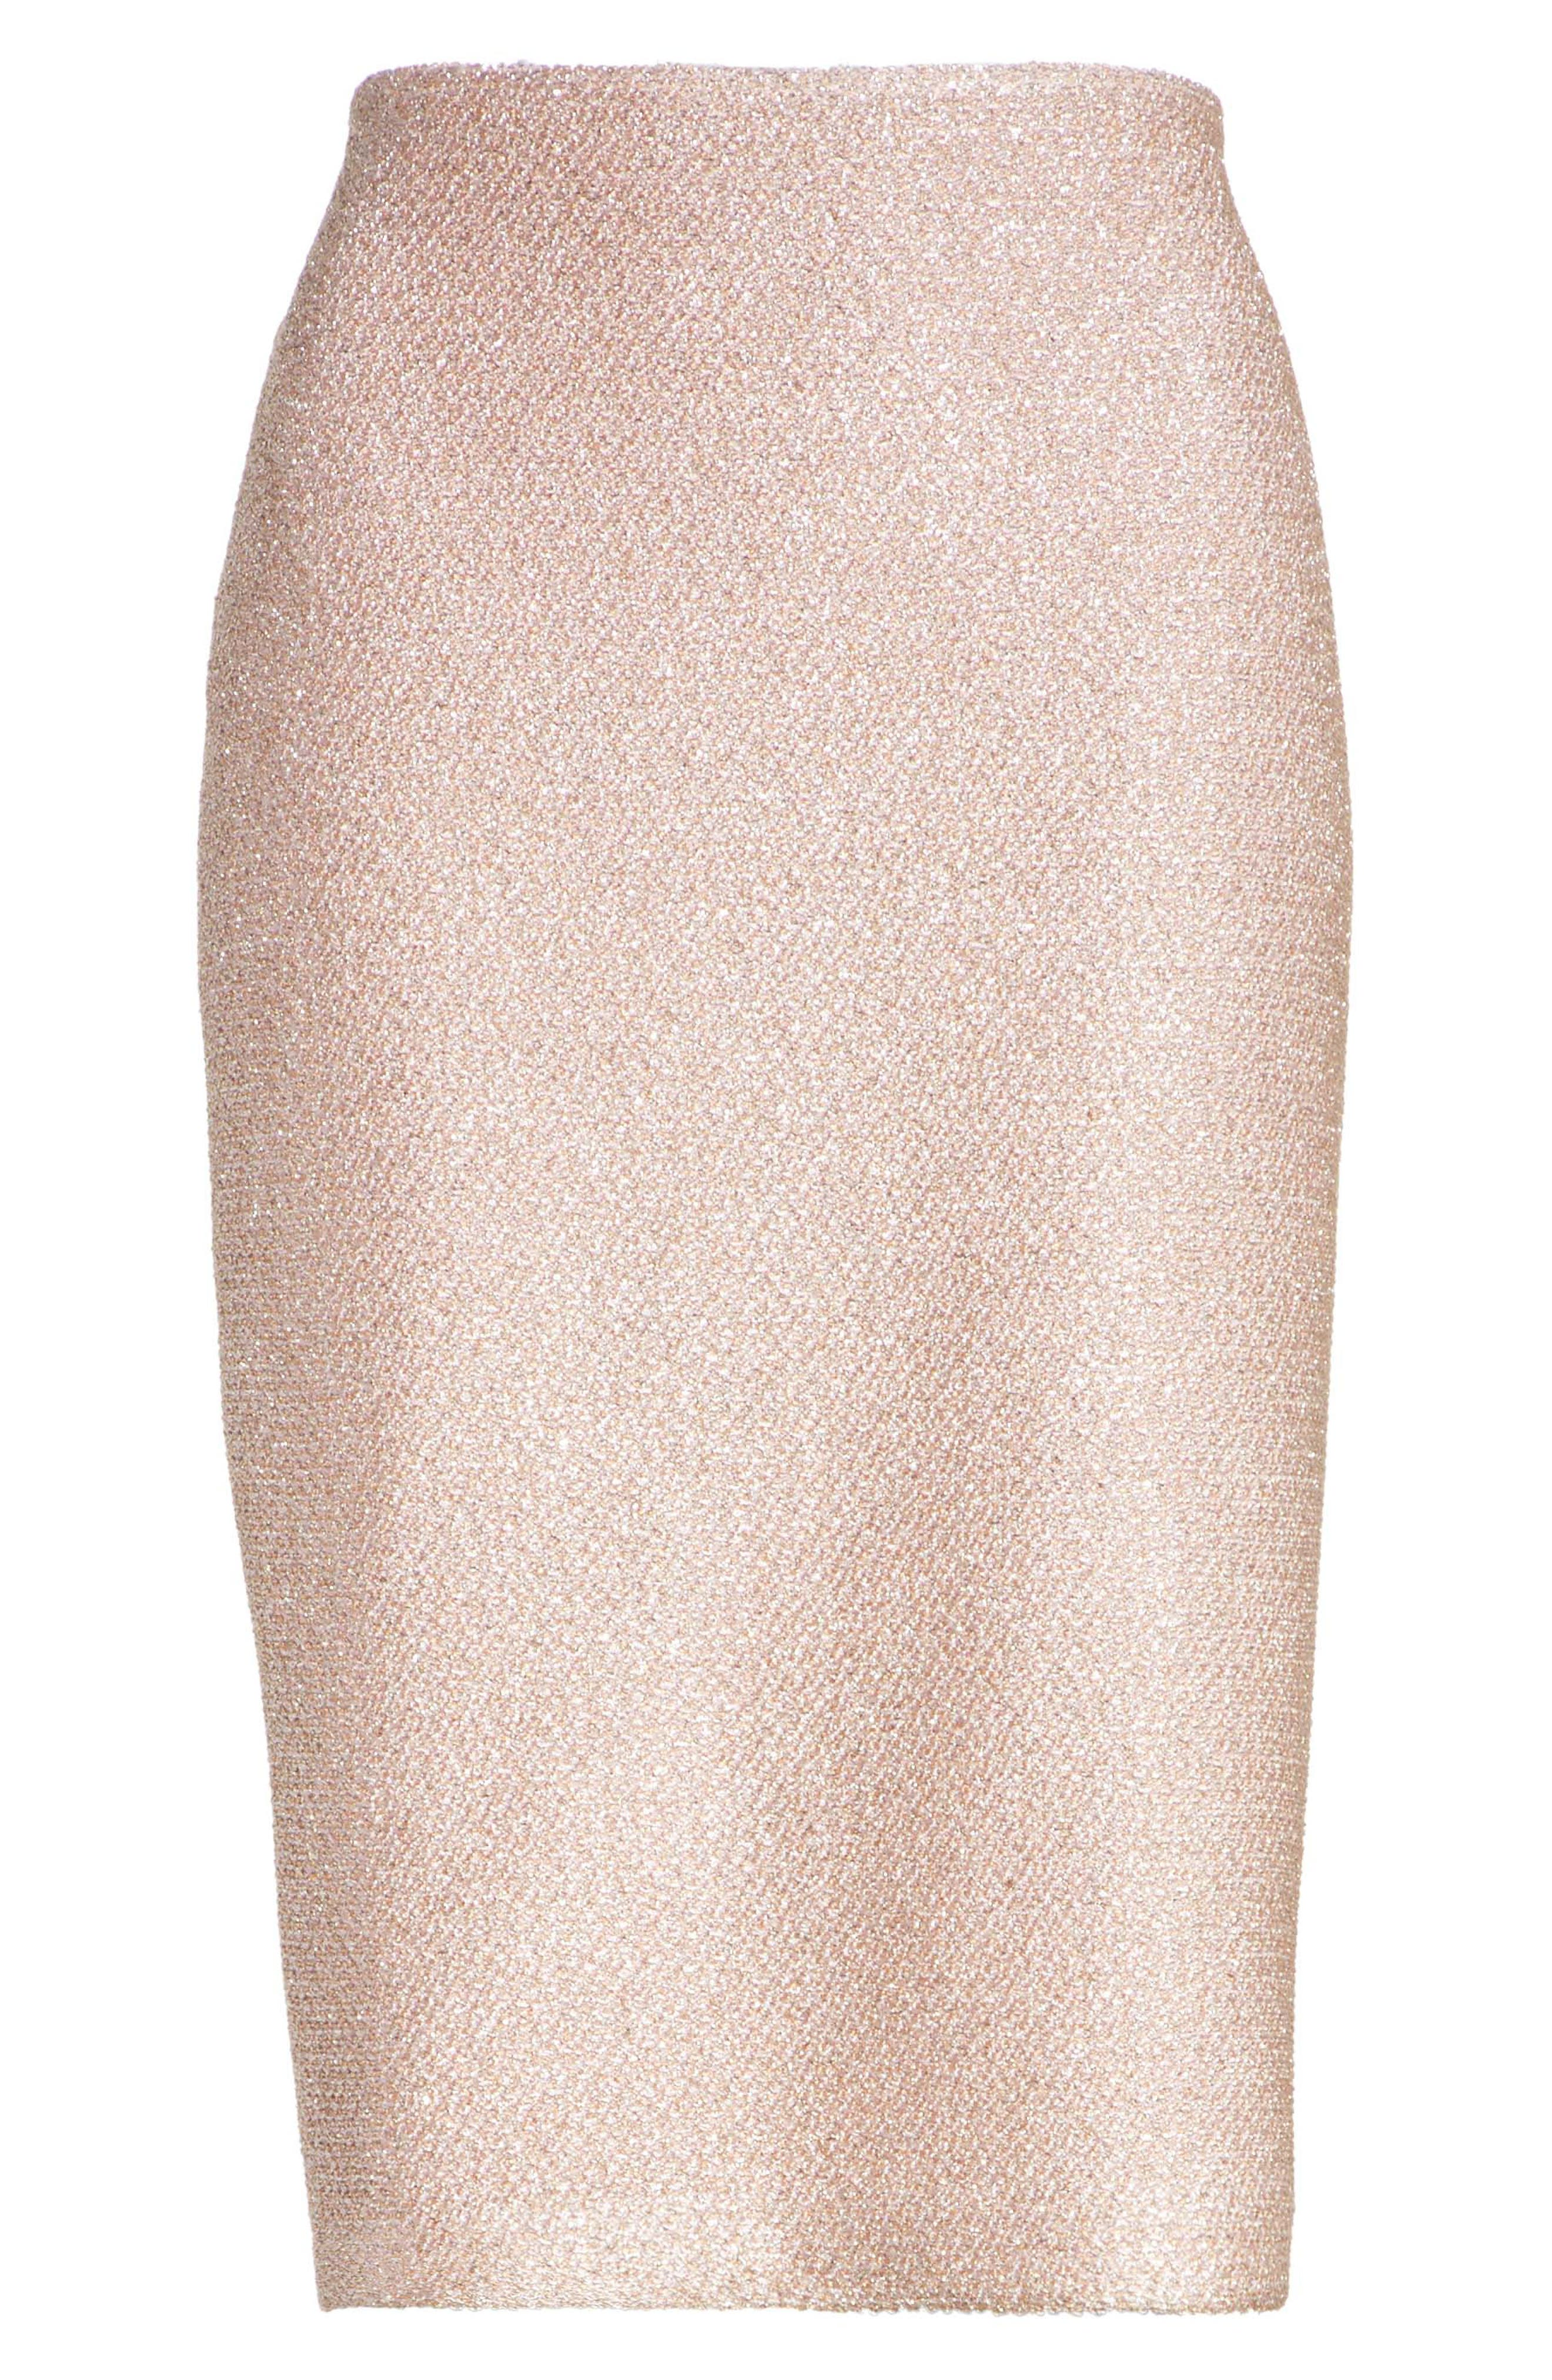 ST. JOHN COLLECTION,                             Frosted Metallic Knit Pencil Skirt,                             Alternate thumbnail 6, color,                             660